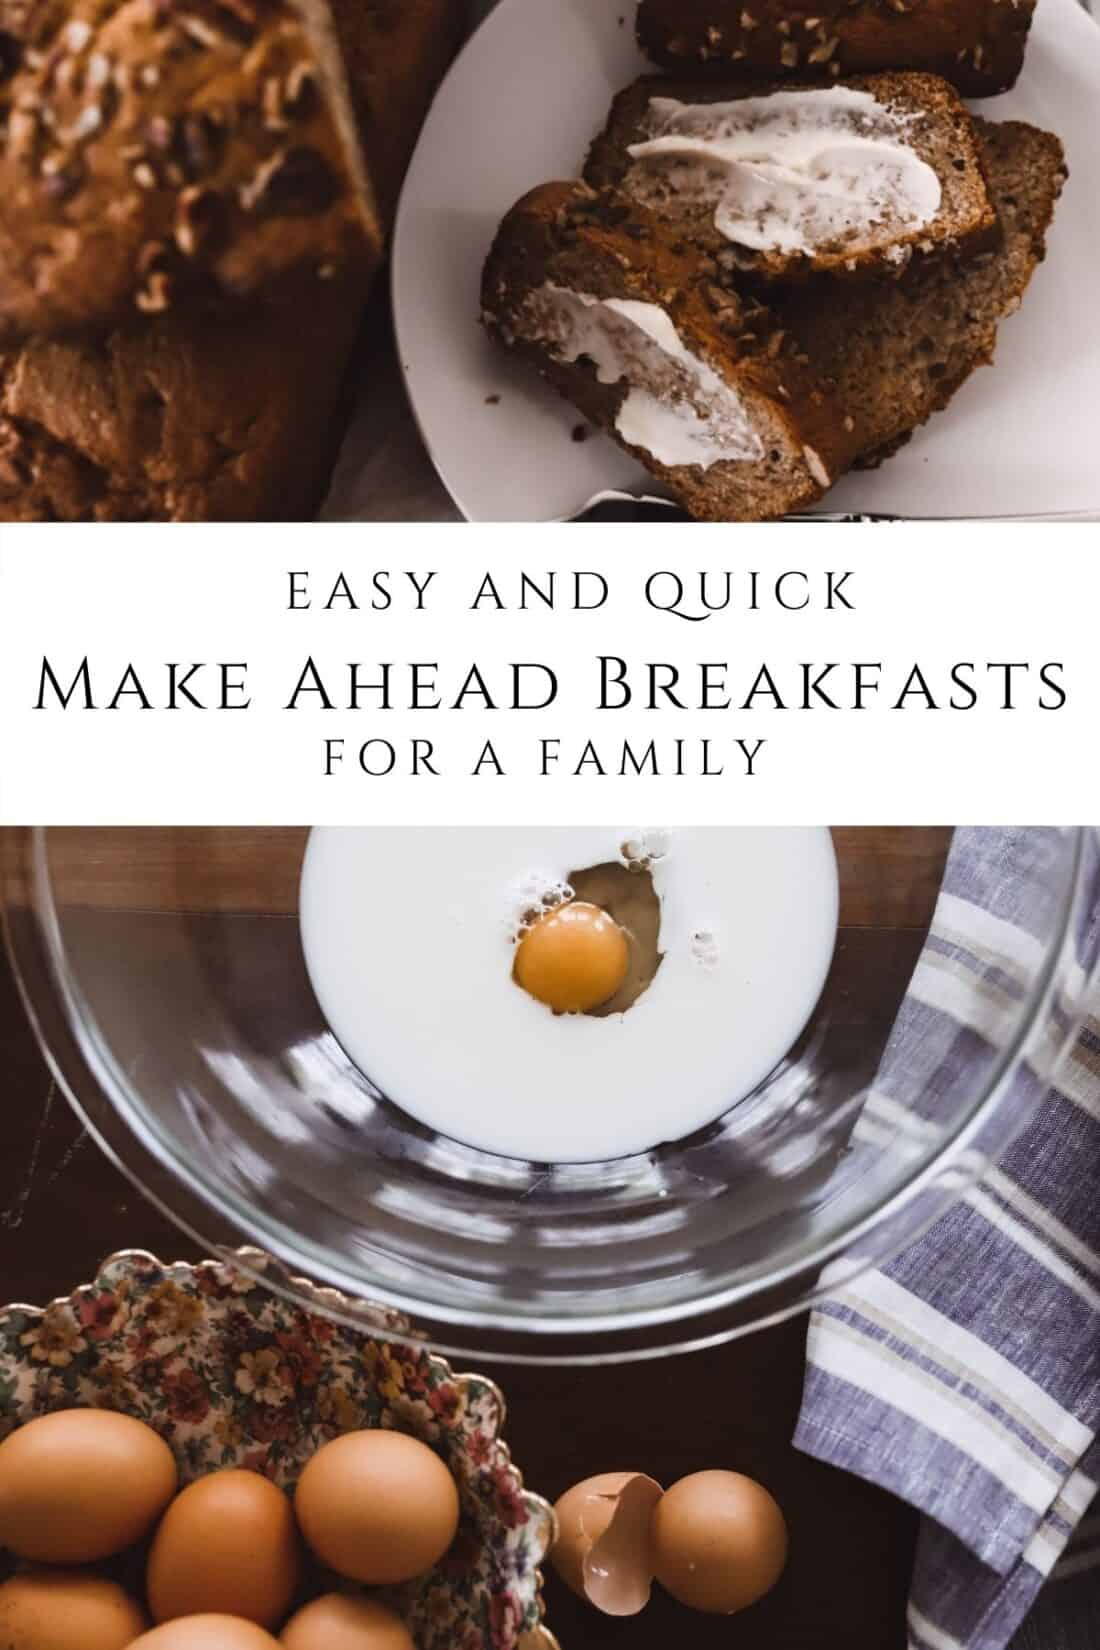 cracked eggs in a bowl milk for breakfast ideas